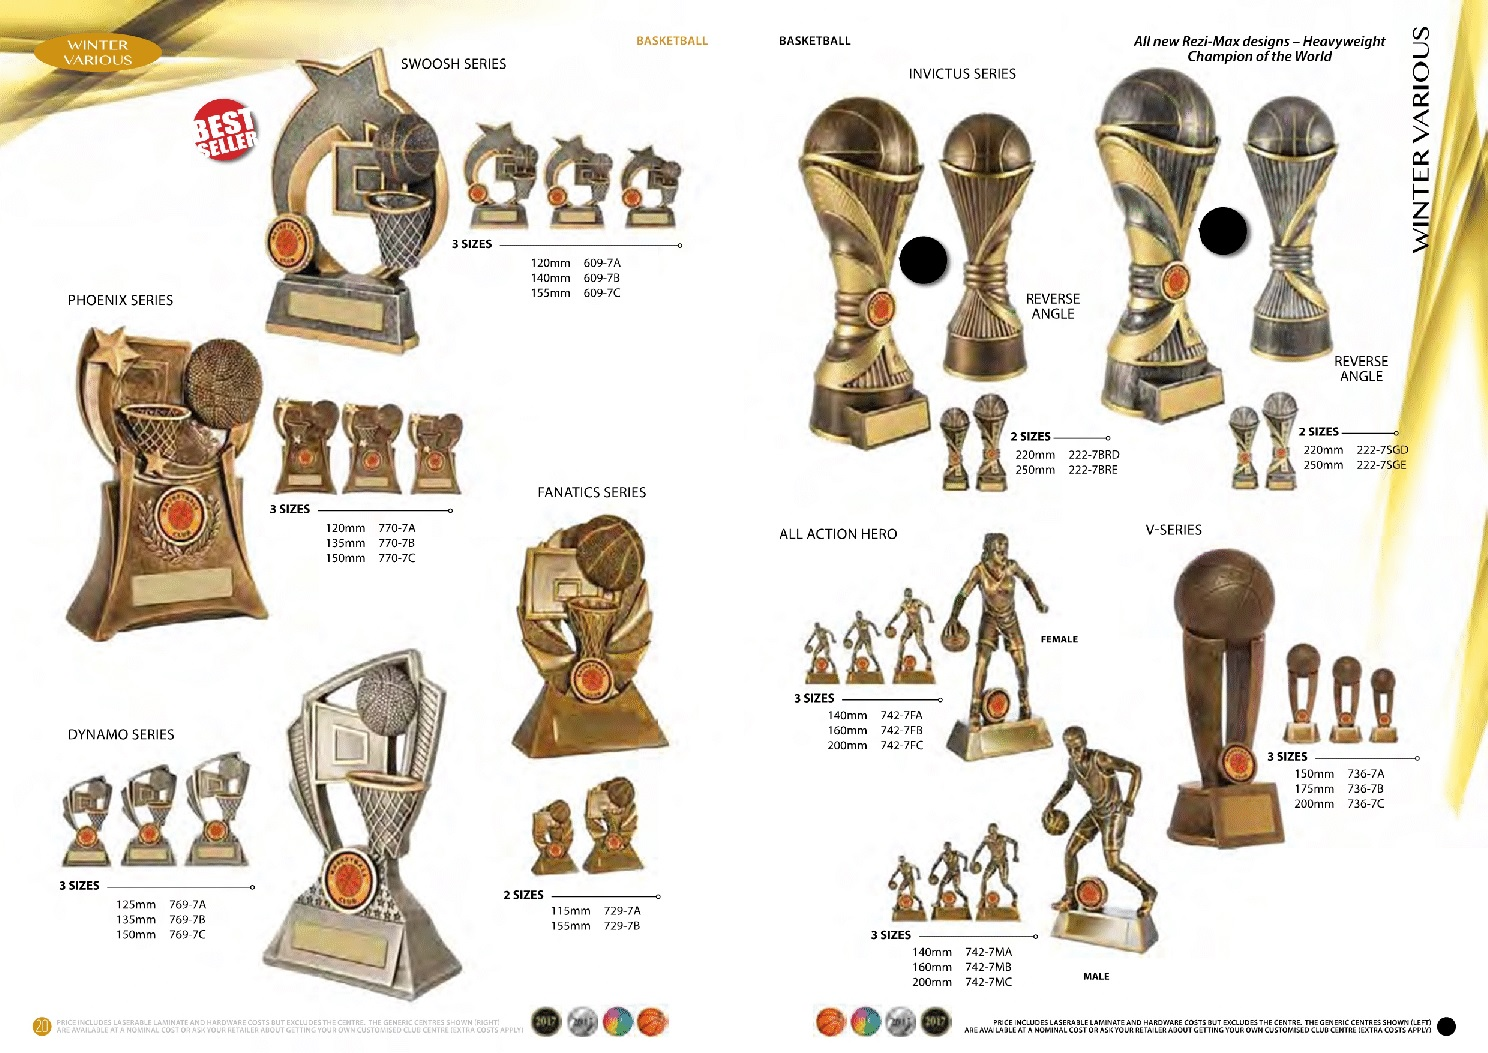 SOME REALLY DIFFERENT TROPHIES